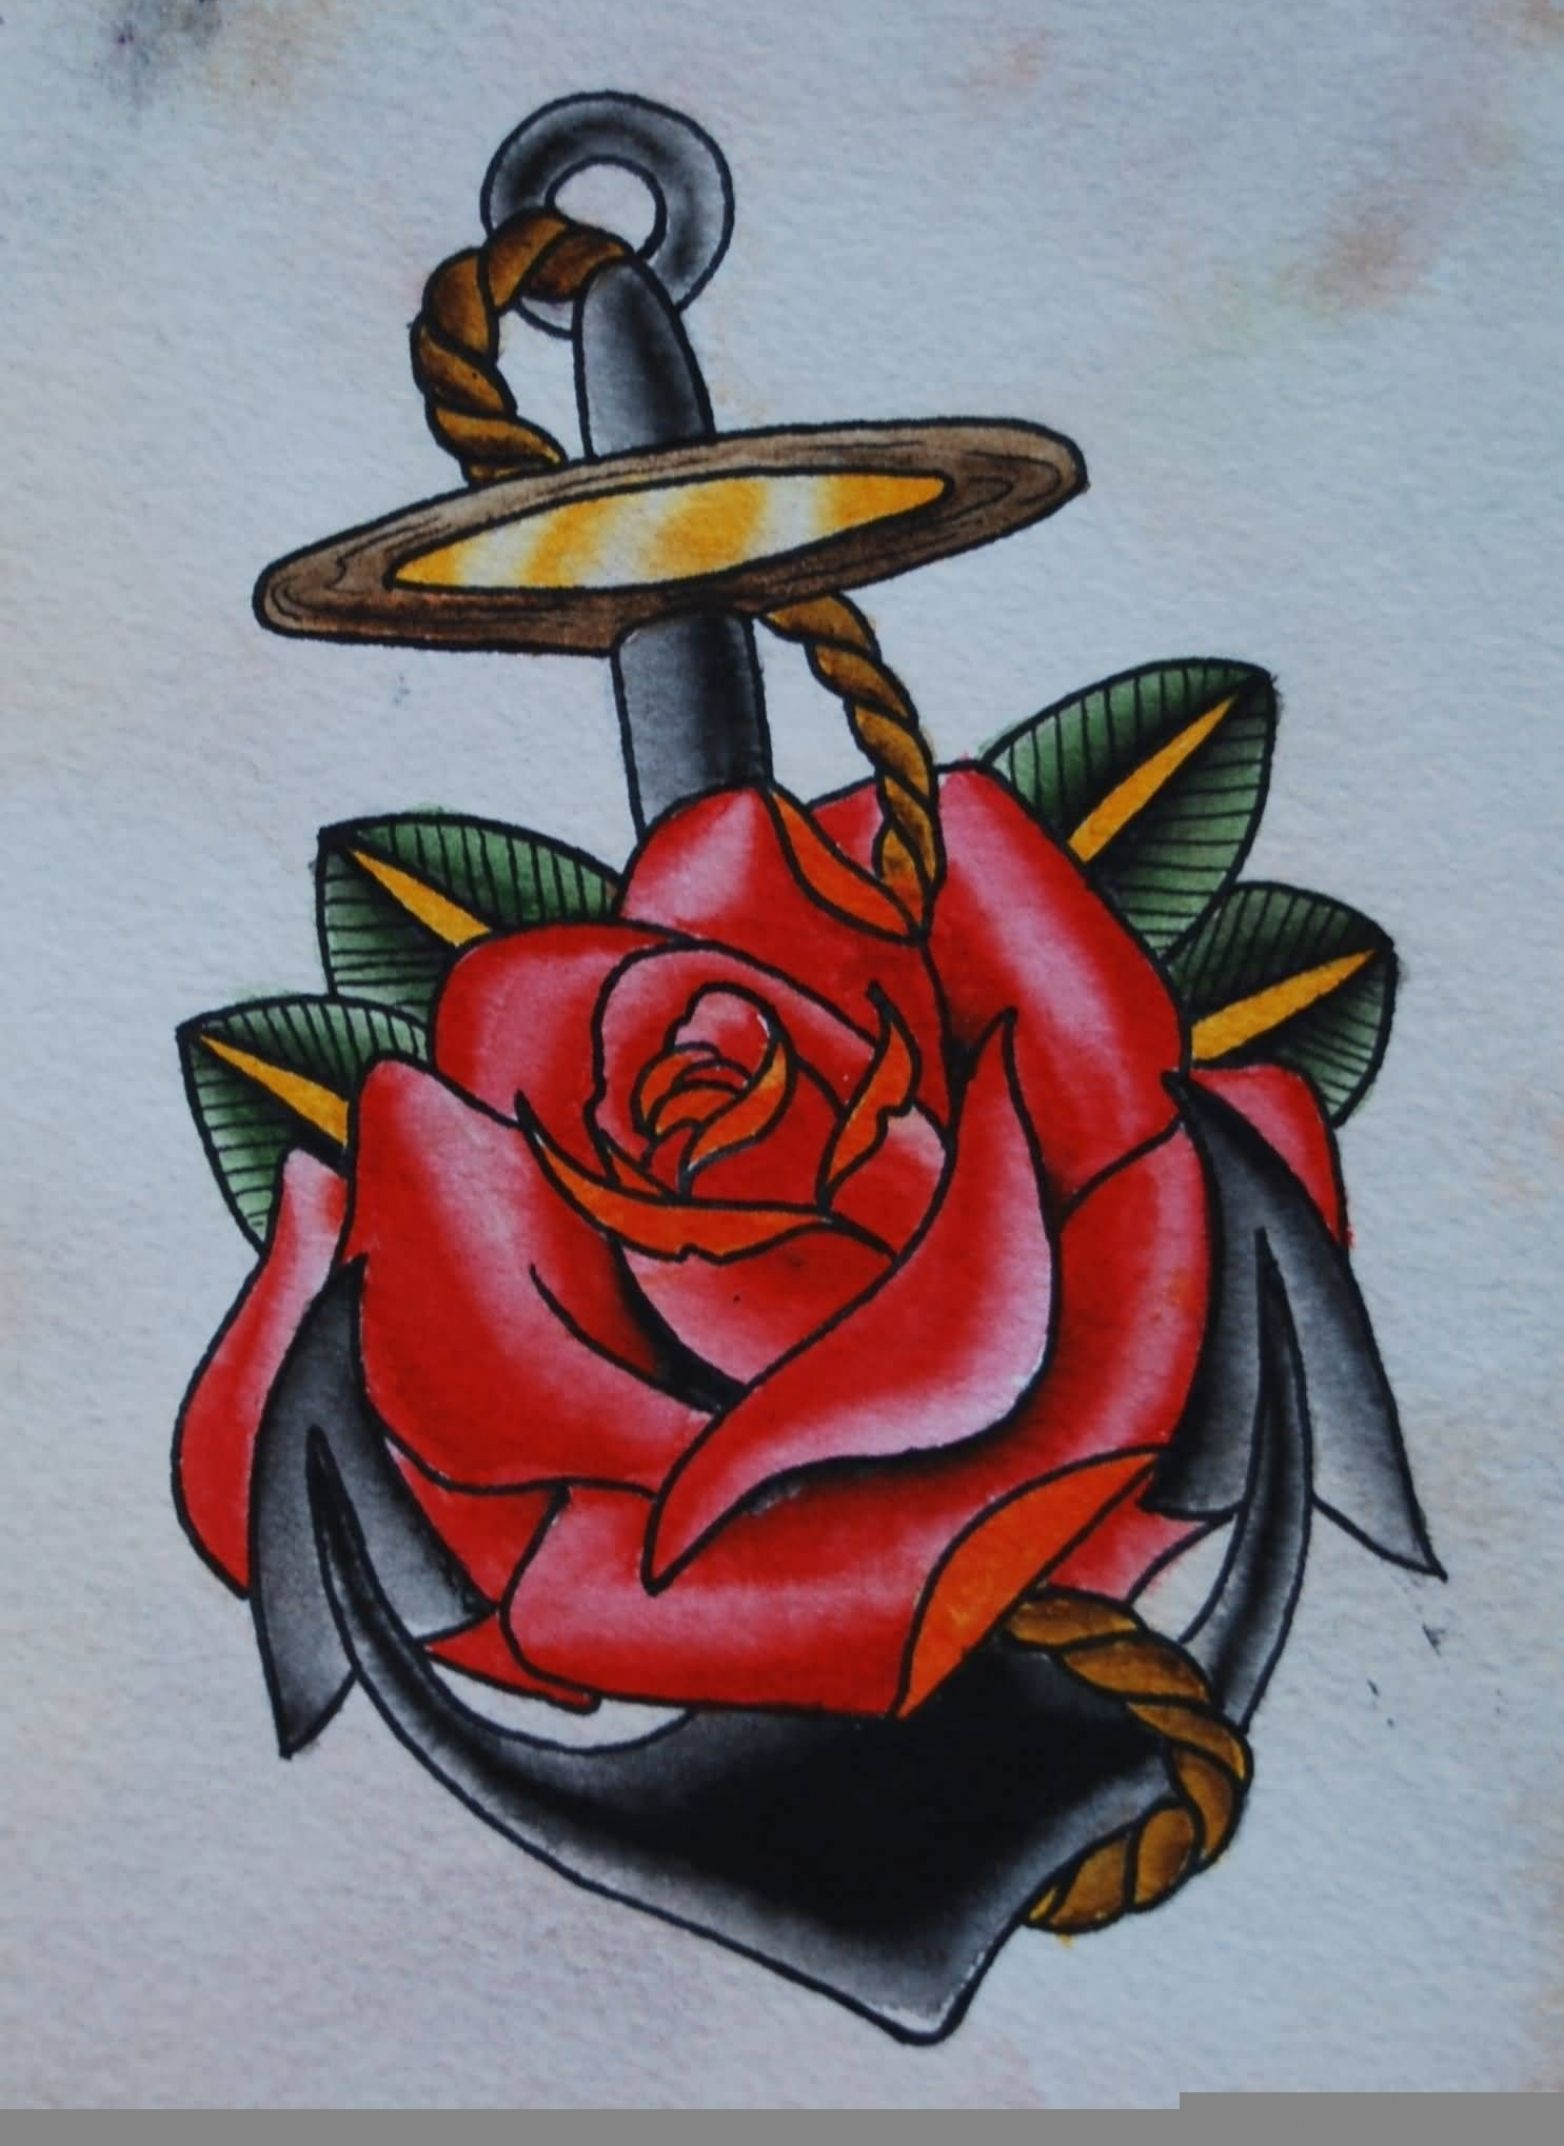 Rose Tattoo History, Ideas, and... - TatRing - Tattoos & Piercings